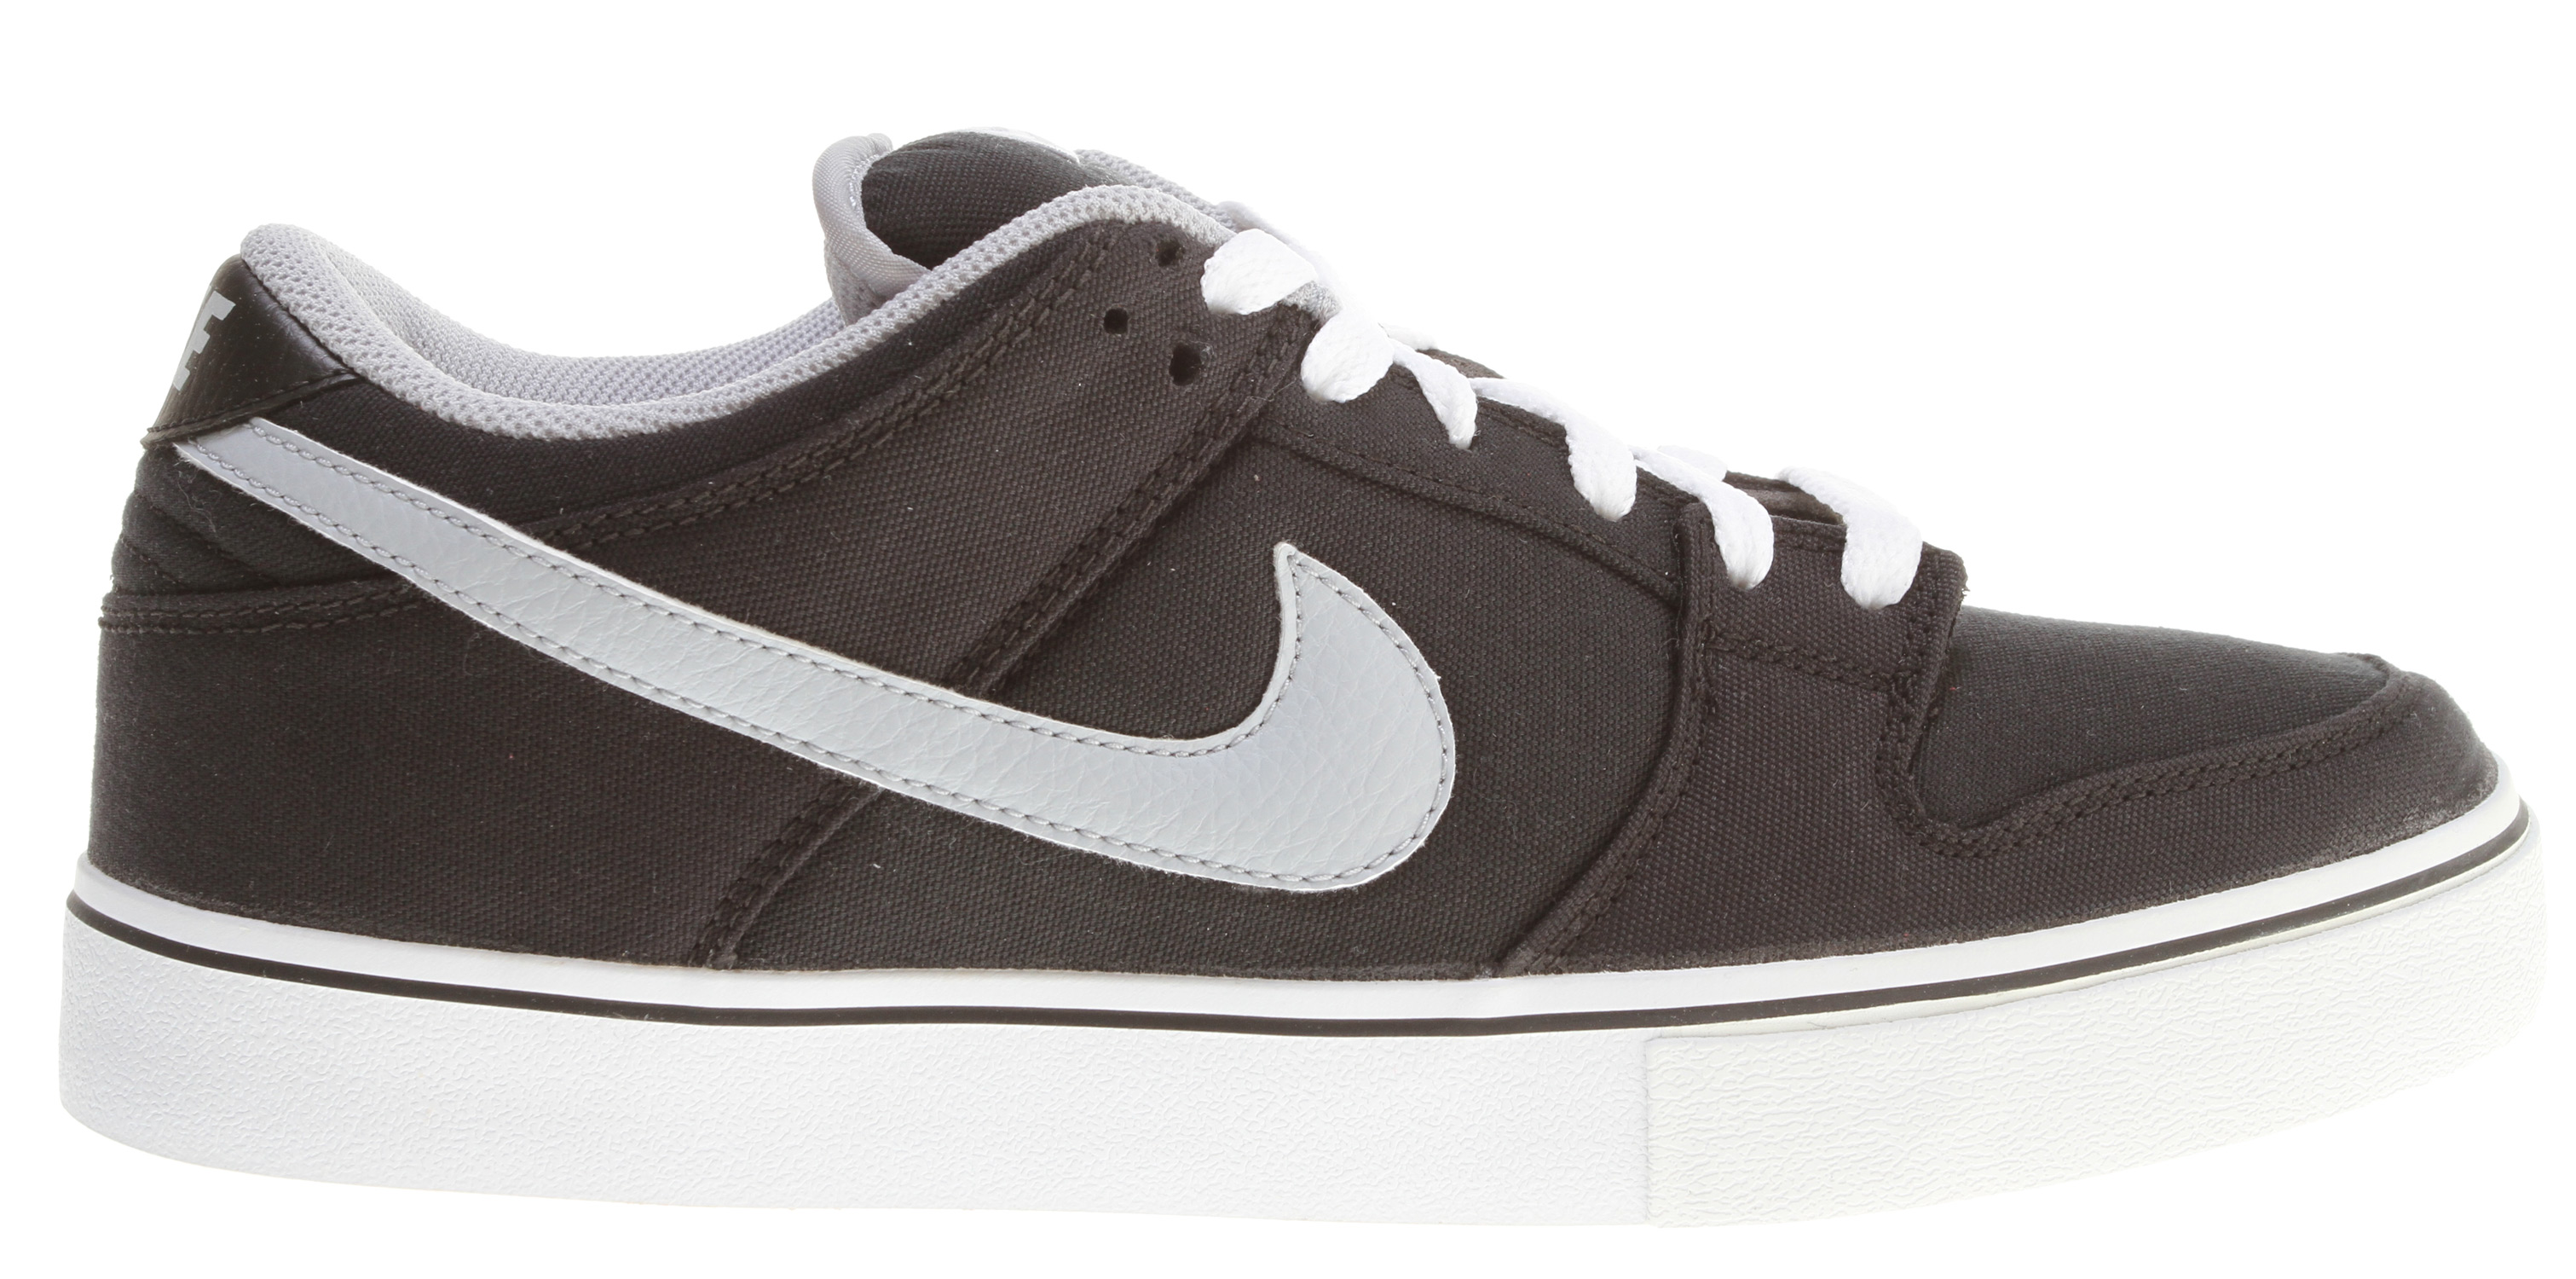 Skateboard Key Features of the Nike Dunk Low LR Skate Shoes: MIDSOLE: Combination drop-in midsole/sockliner designed for maximum comfort and impact protection. UPPER: Leather, suede, and Nubuck with classic skate overlays. Lightweight mesh on the tongue and perforations on the vamp for increased breathability. Classic styling with durability and protection. Excellent board control in a low-profile outsole while maintaining good impact absorption. OUTSOLE: Rubber outsole for durability. Designed for flexibility and board feel. - $51.95